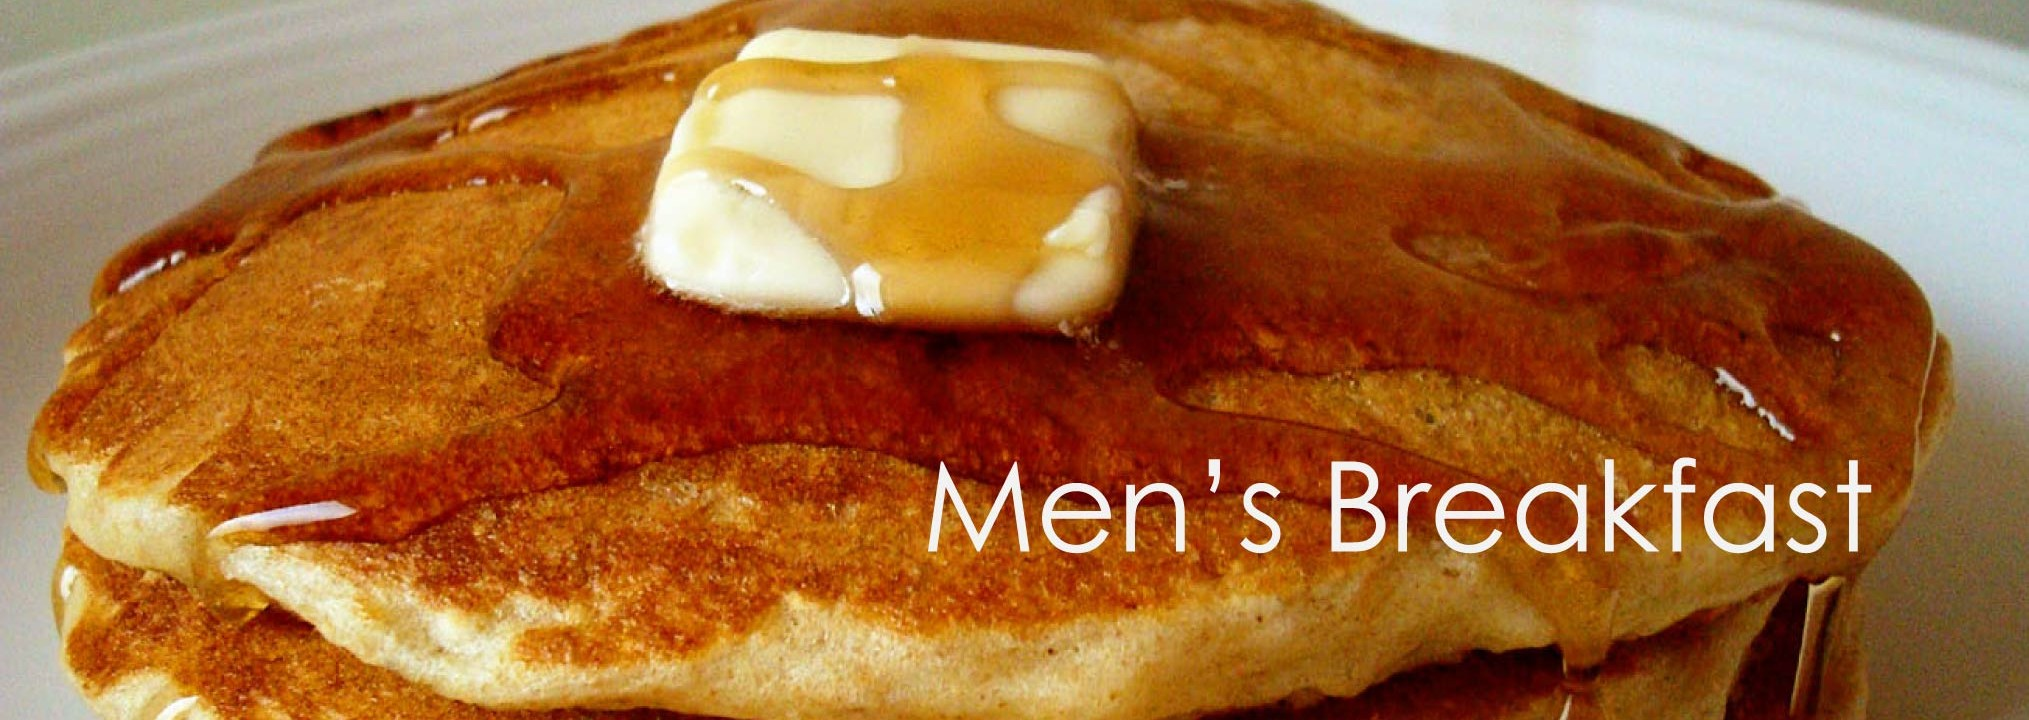 Men's Breakfast @ Mug Rack | Jackson | New Jersey | United States